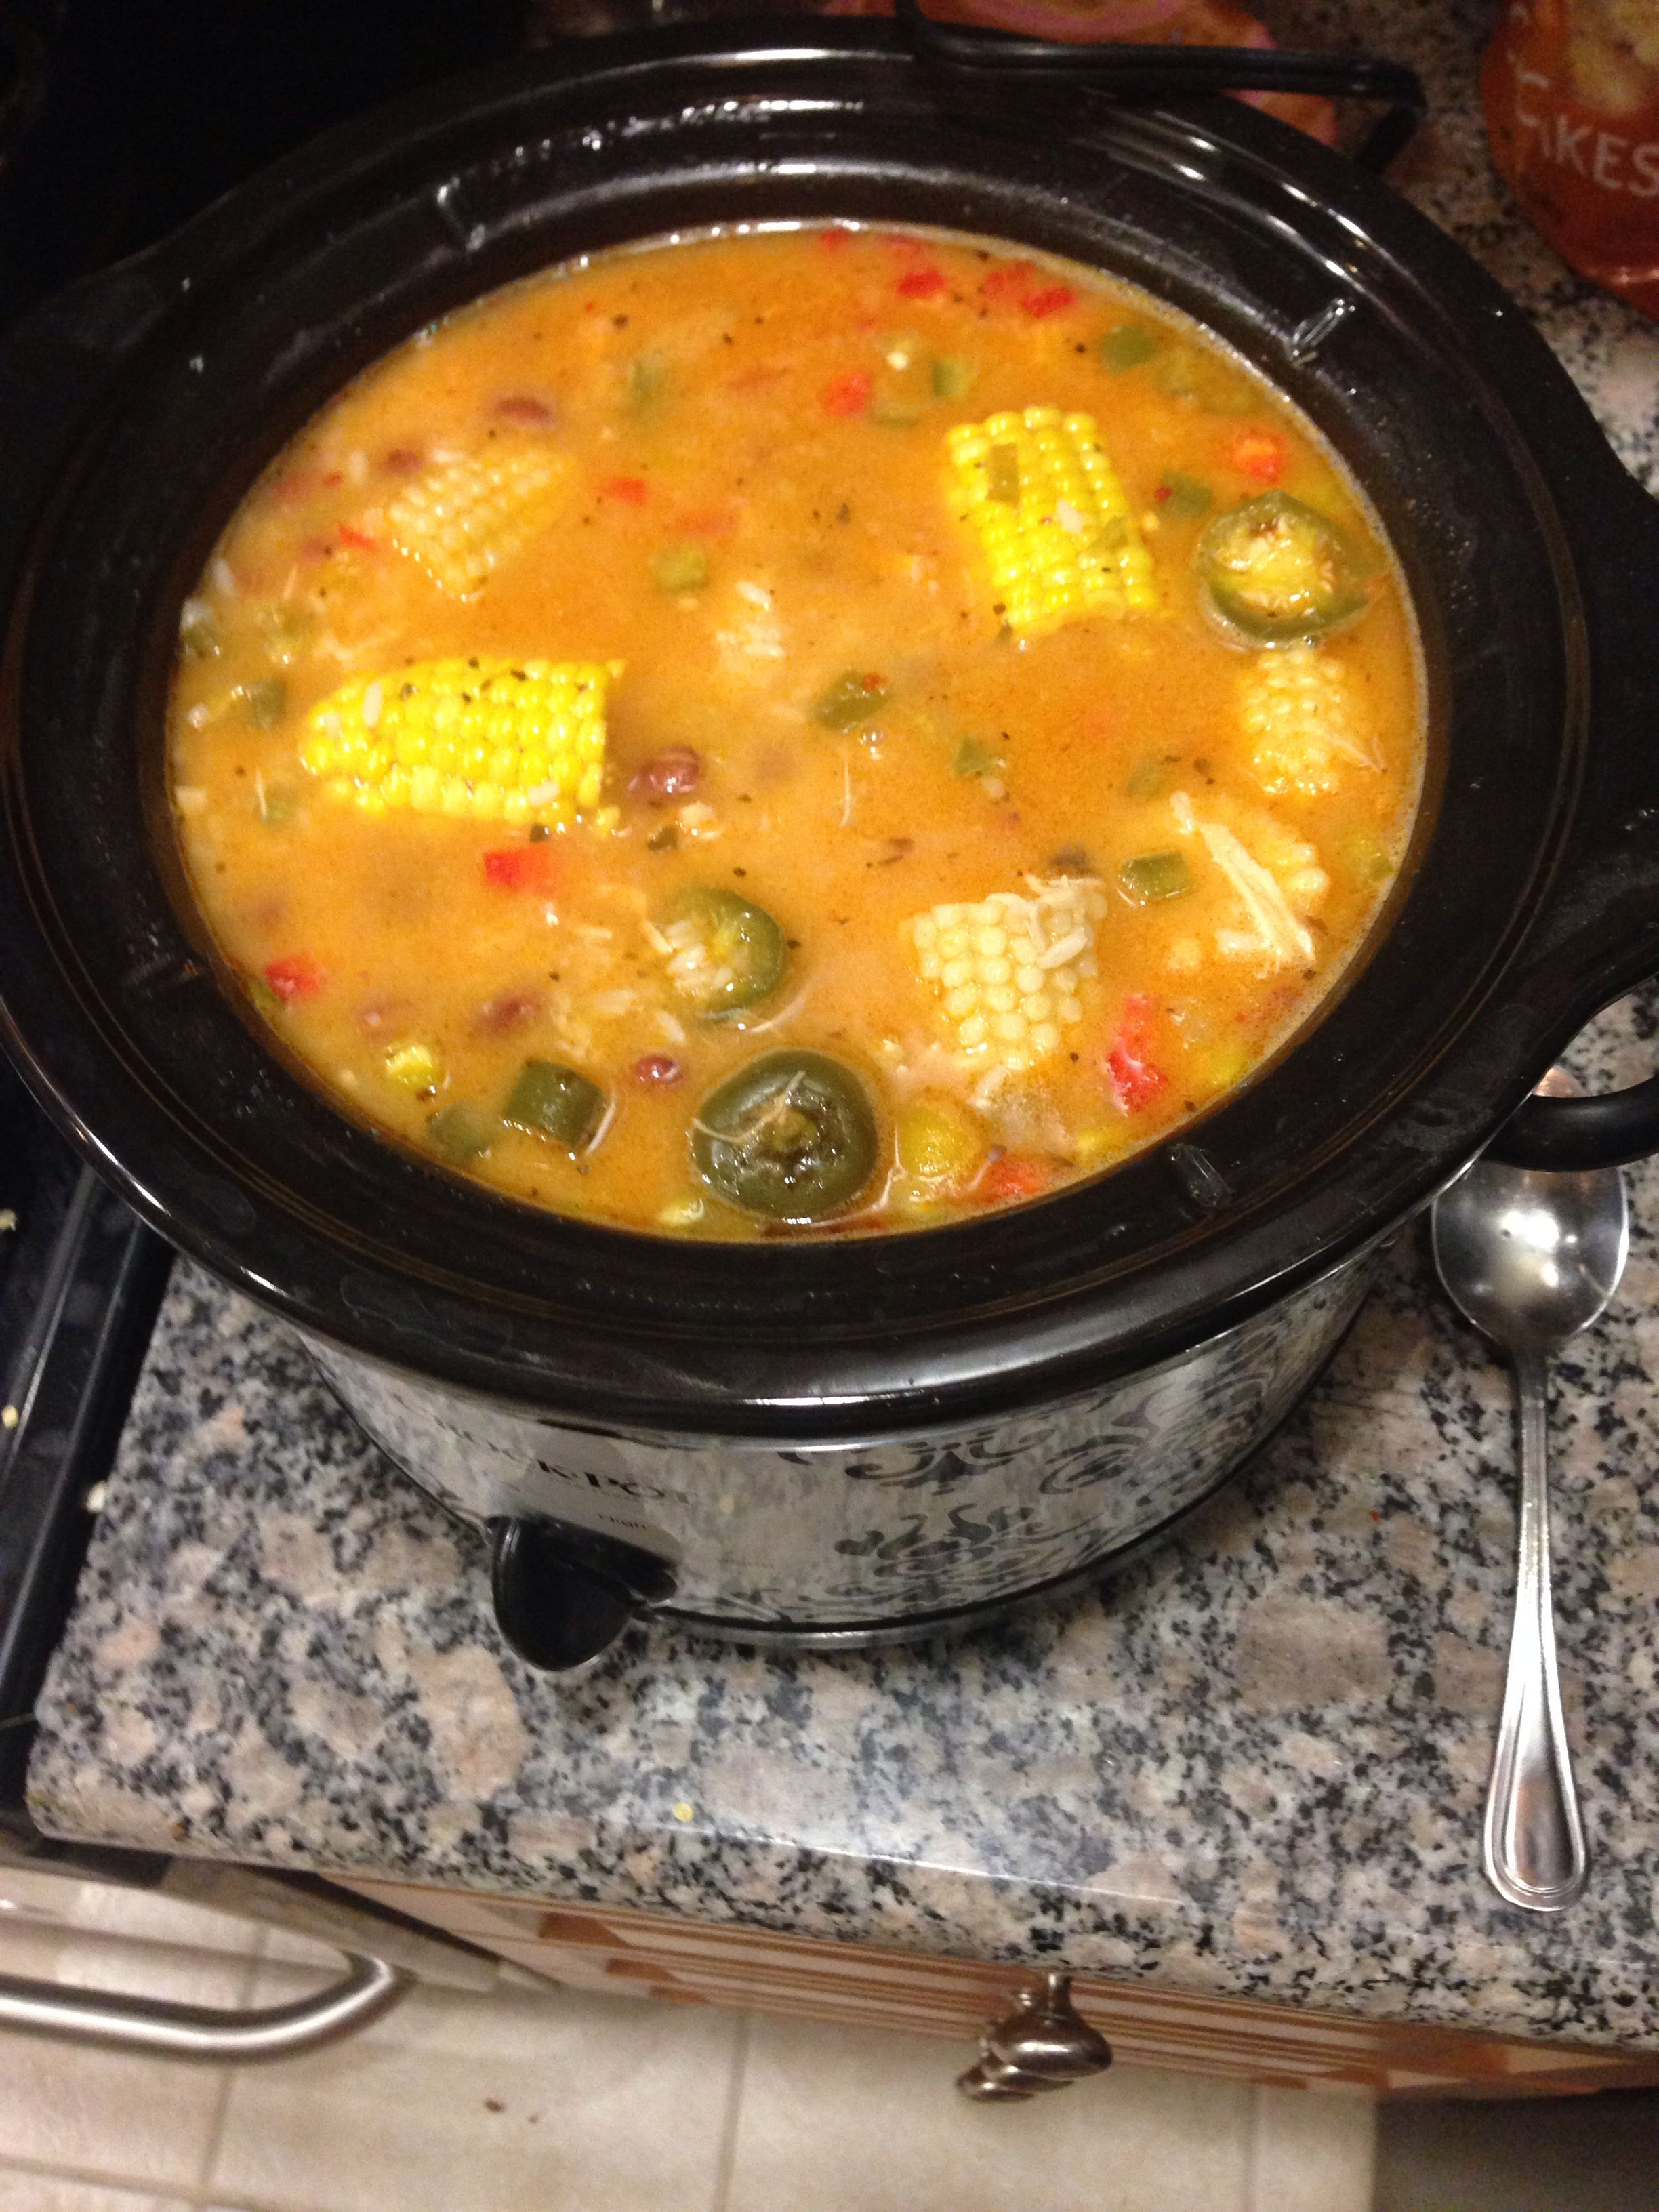 Sancocho  2 cups chicken broth, 2 cups chicken, 2 cups diced red and green peppers, 2 cups of rice, 2 cans of red beans, 2 corn cobs, 2 jalapeño peppers, 1 tbsp olive oil, 1 1/2 tsp. red pepper, 1tsp salt and pepper. Prepare chicken, rice, pepper, and beans. Then put all ingredients in a crock pot or pot and cook on low for at least an hour! So tasty!!